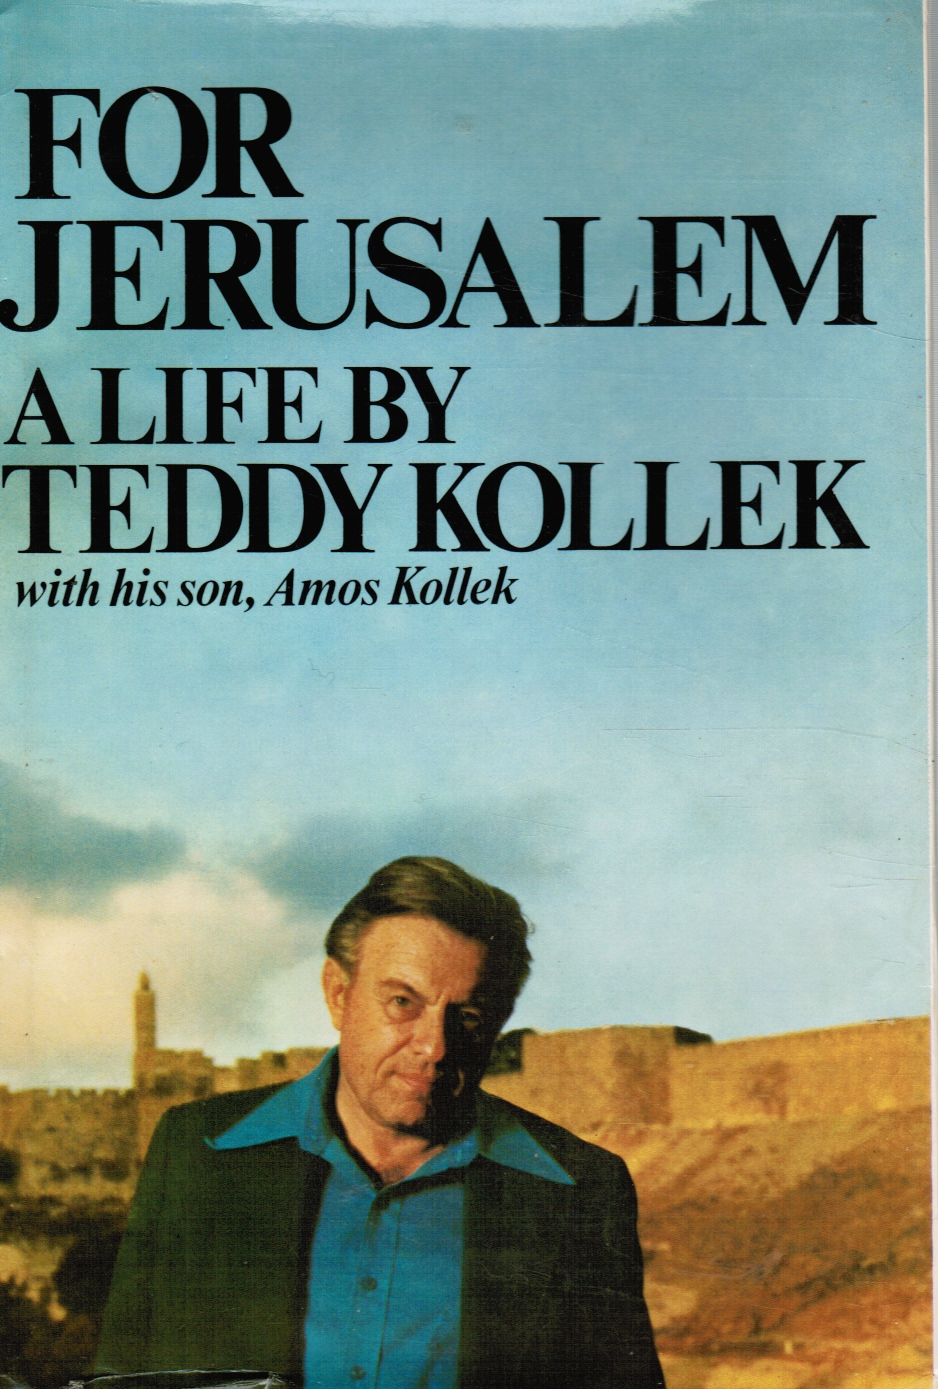 Image for For Jerusalem: a Life by Teddy Kollek with His Son, Amos Kollek (SIGNED)